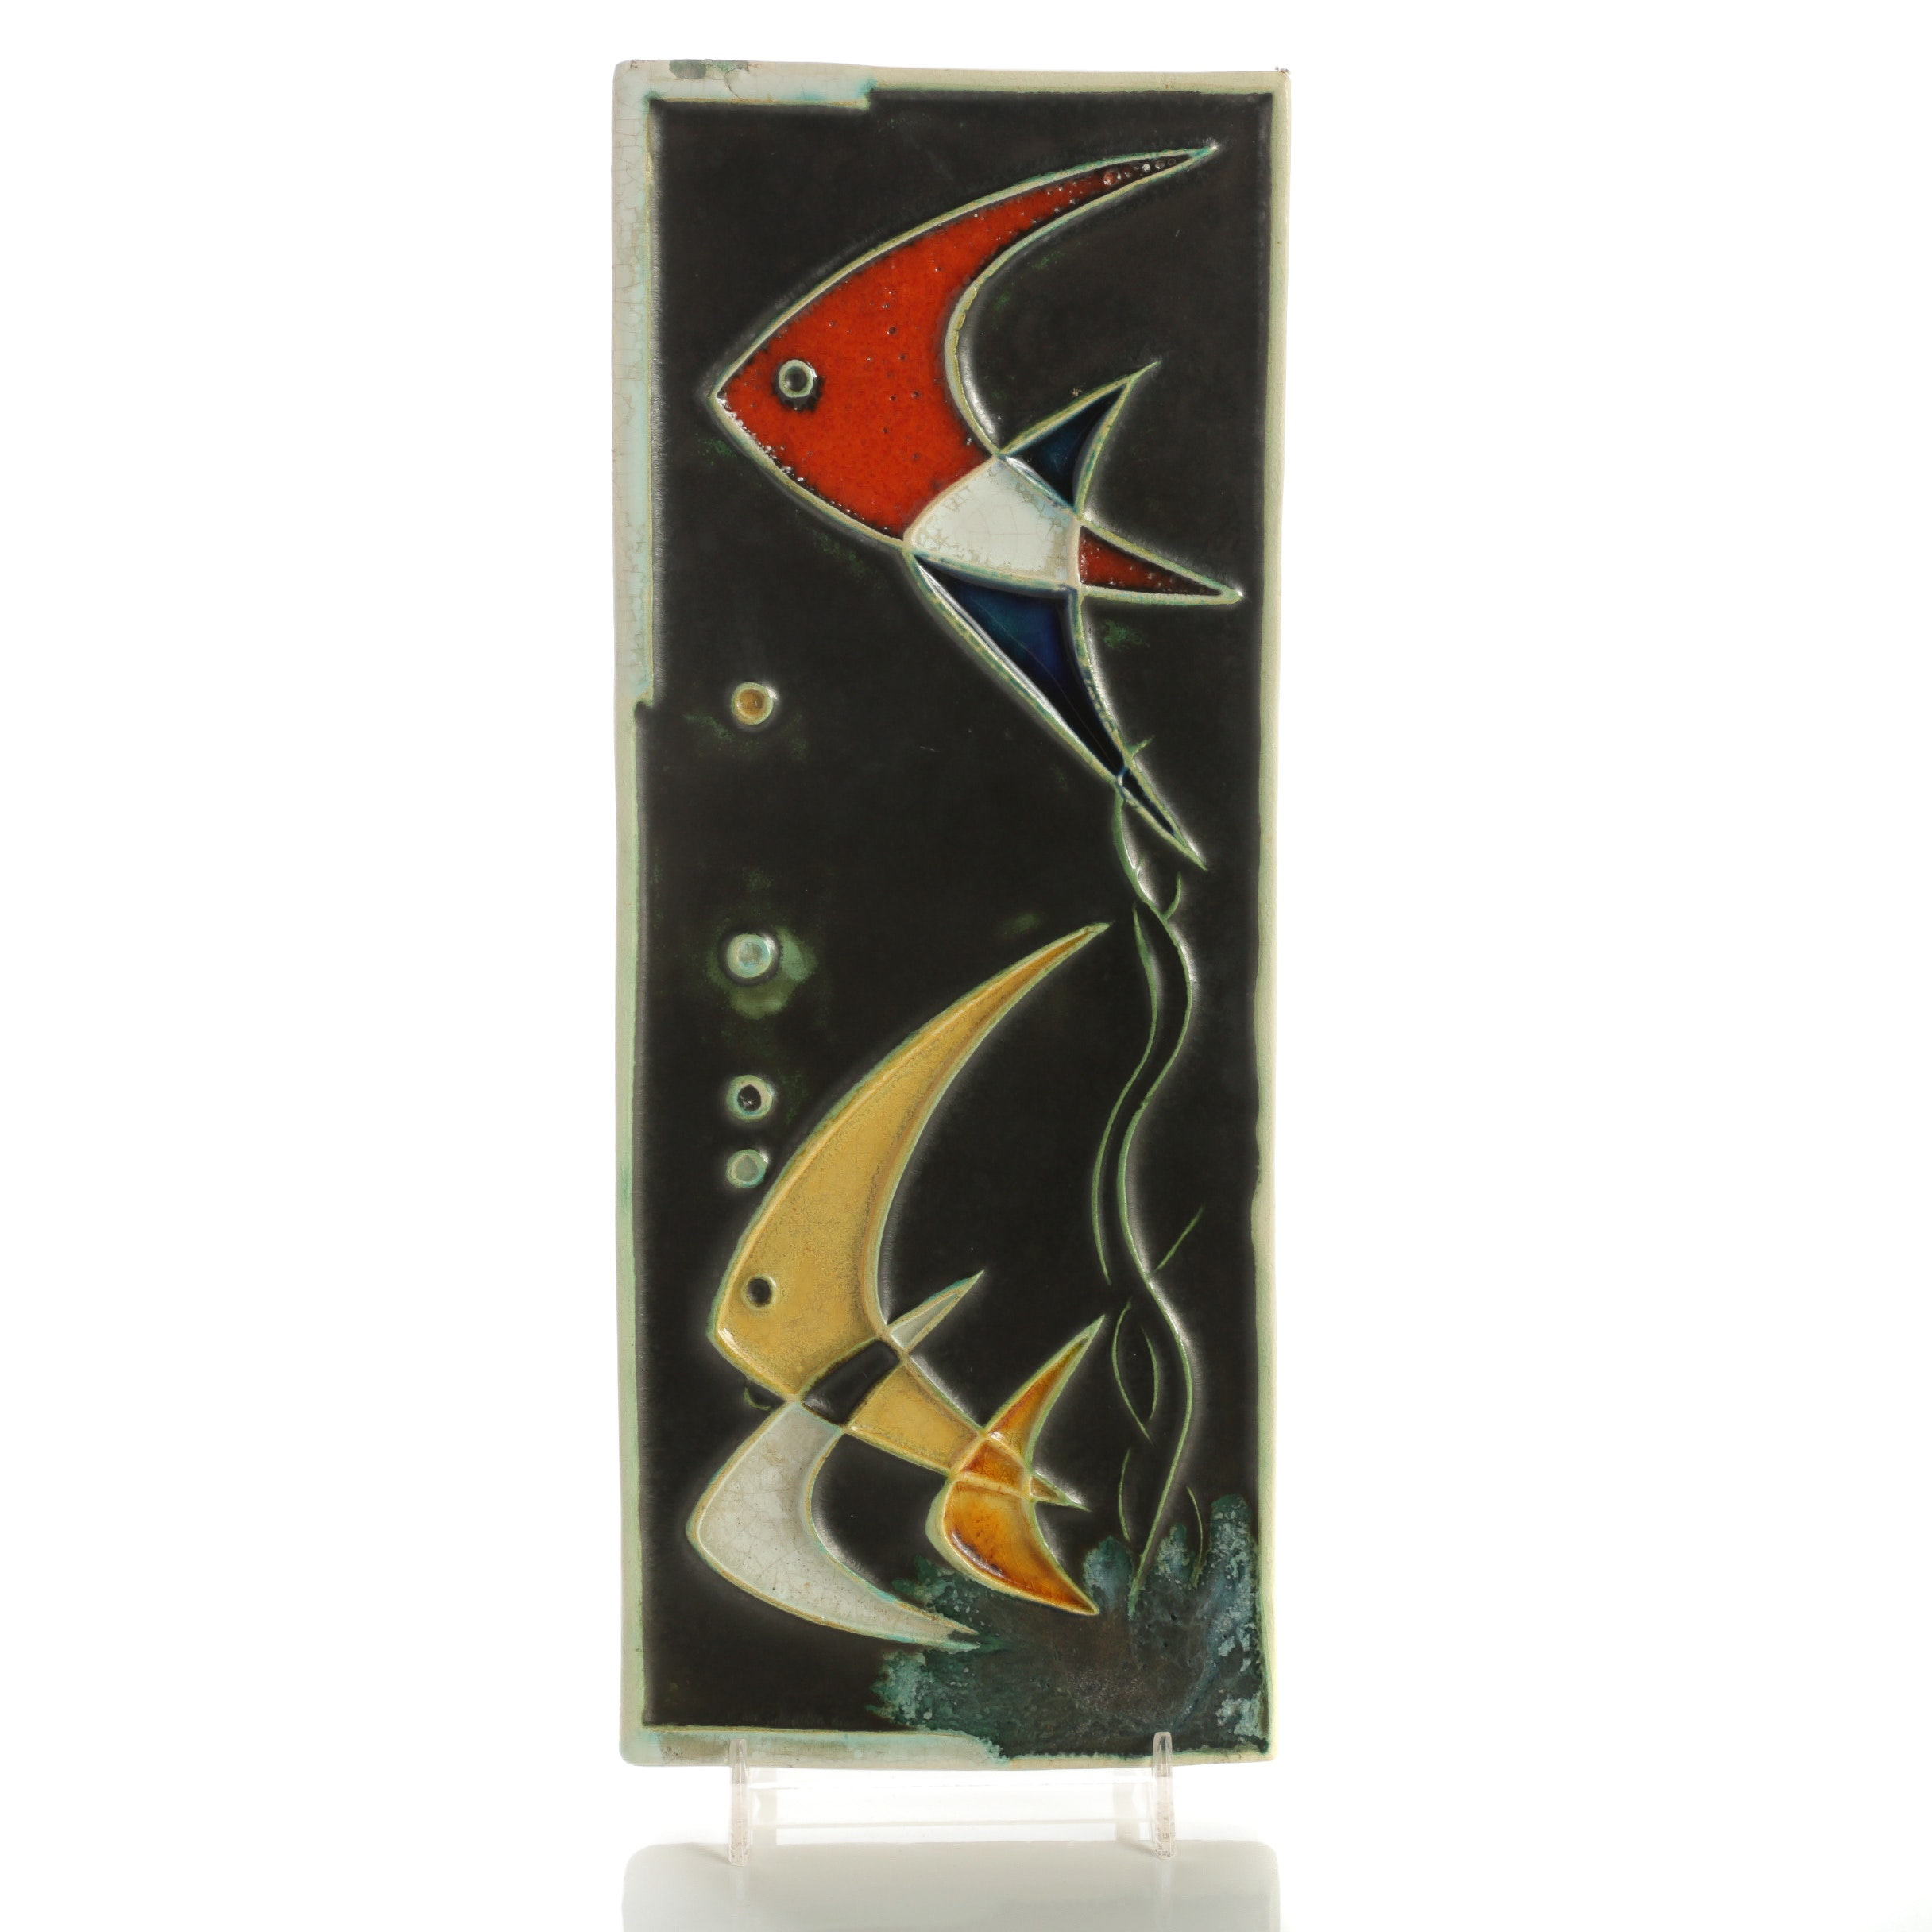 Helmut Schäffenacker Ceramic Wall Plaque of Aquatic Scene